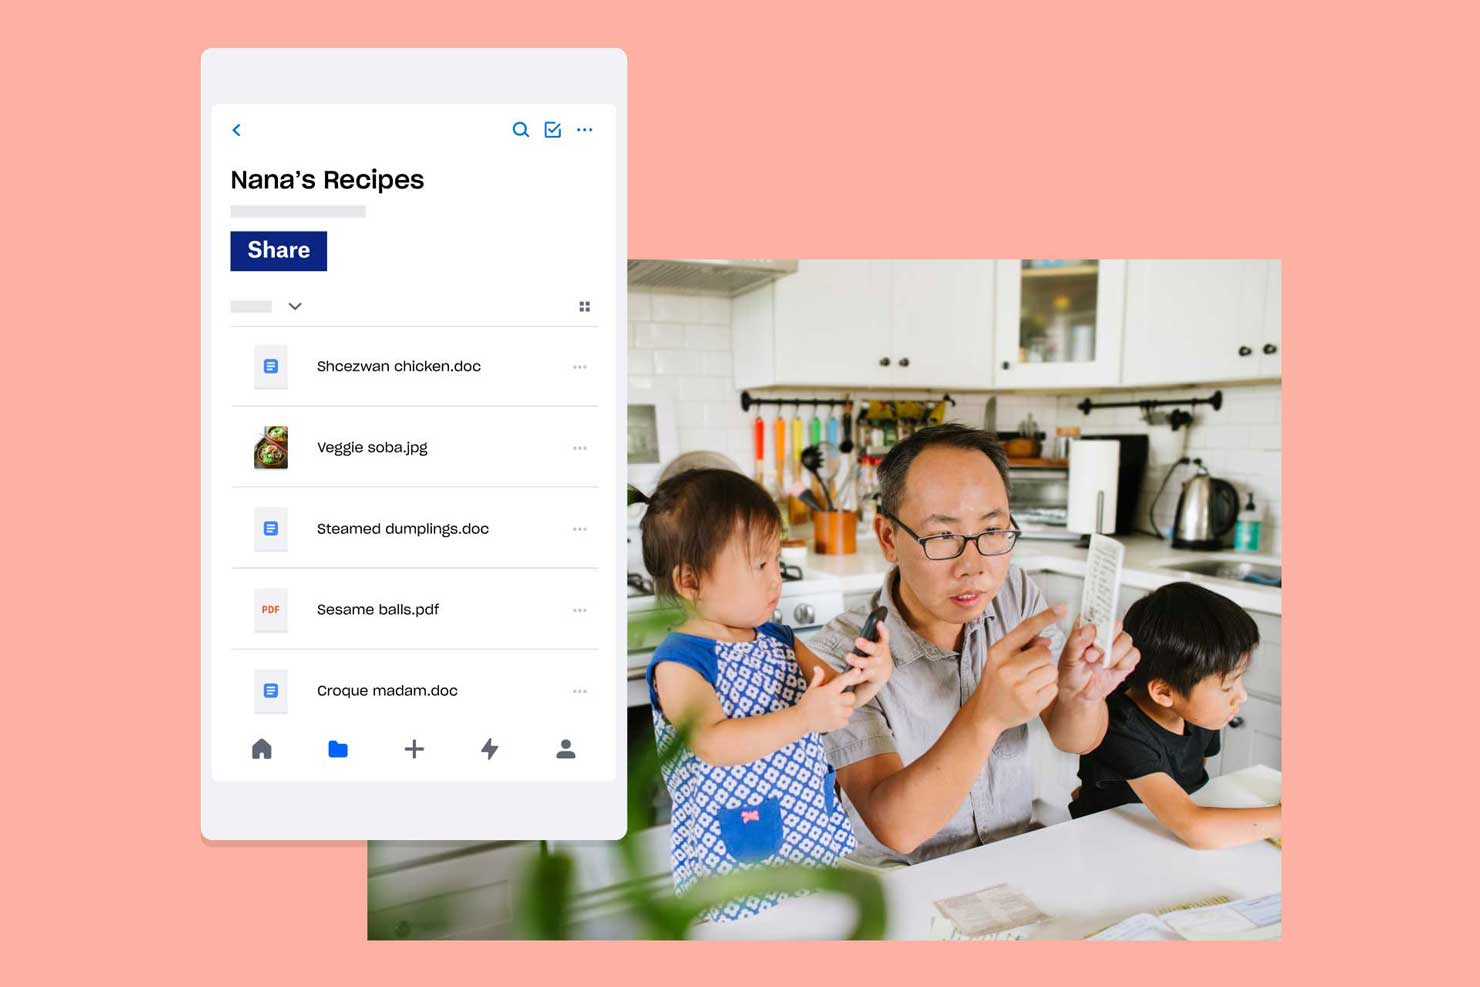 Father with two children looking at folder of Nana's Recipes in Dropbox